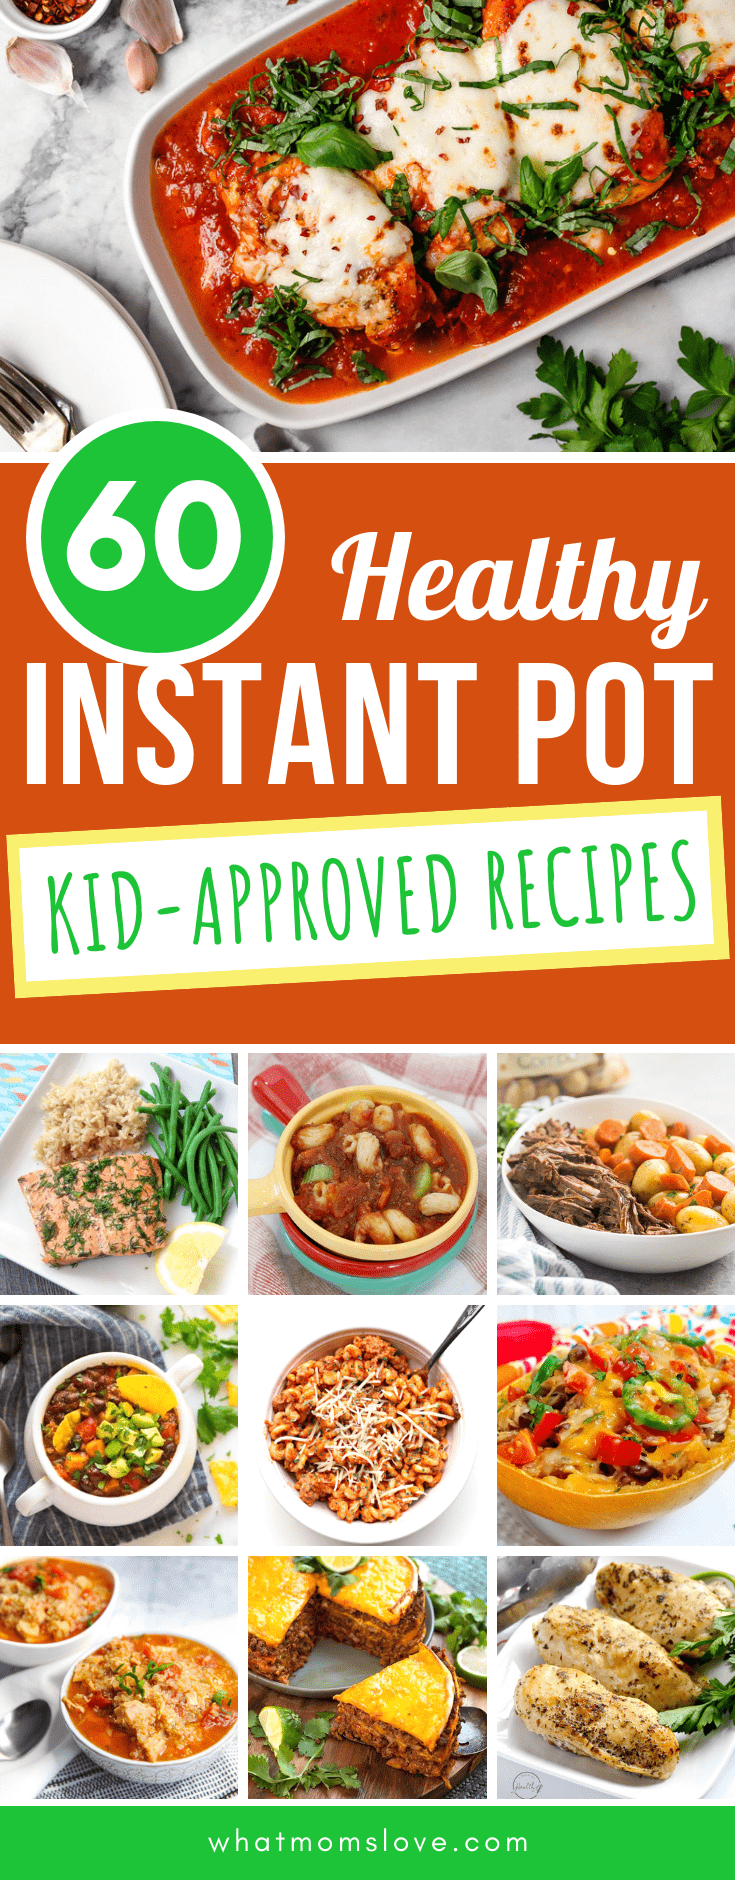 60 Kid Friendly Healthy Instant Pot Recipes Your Whole Family